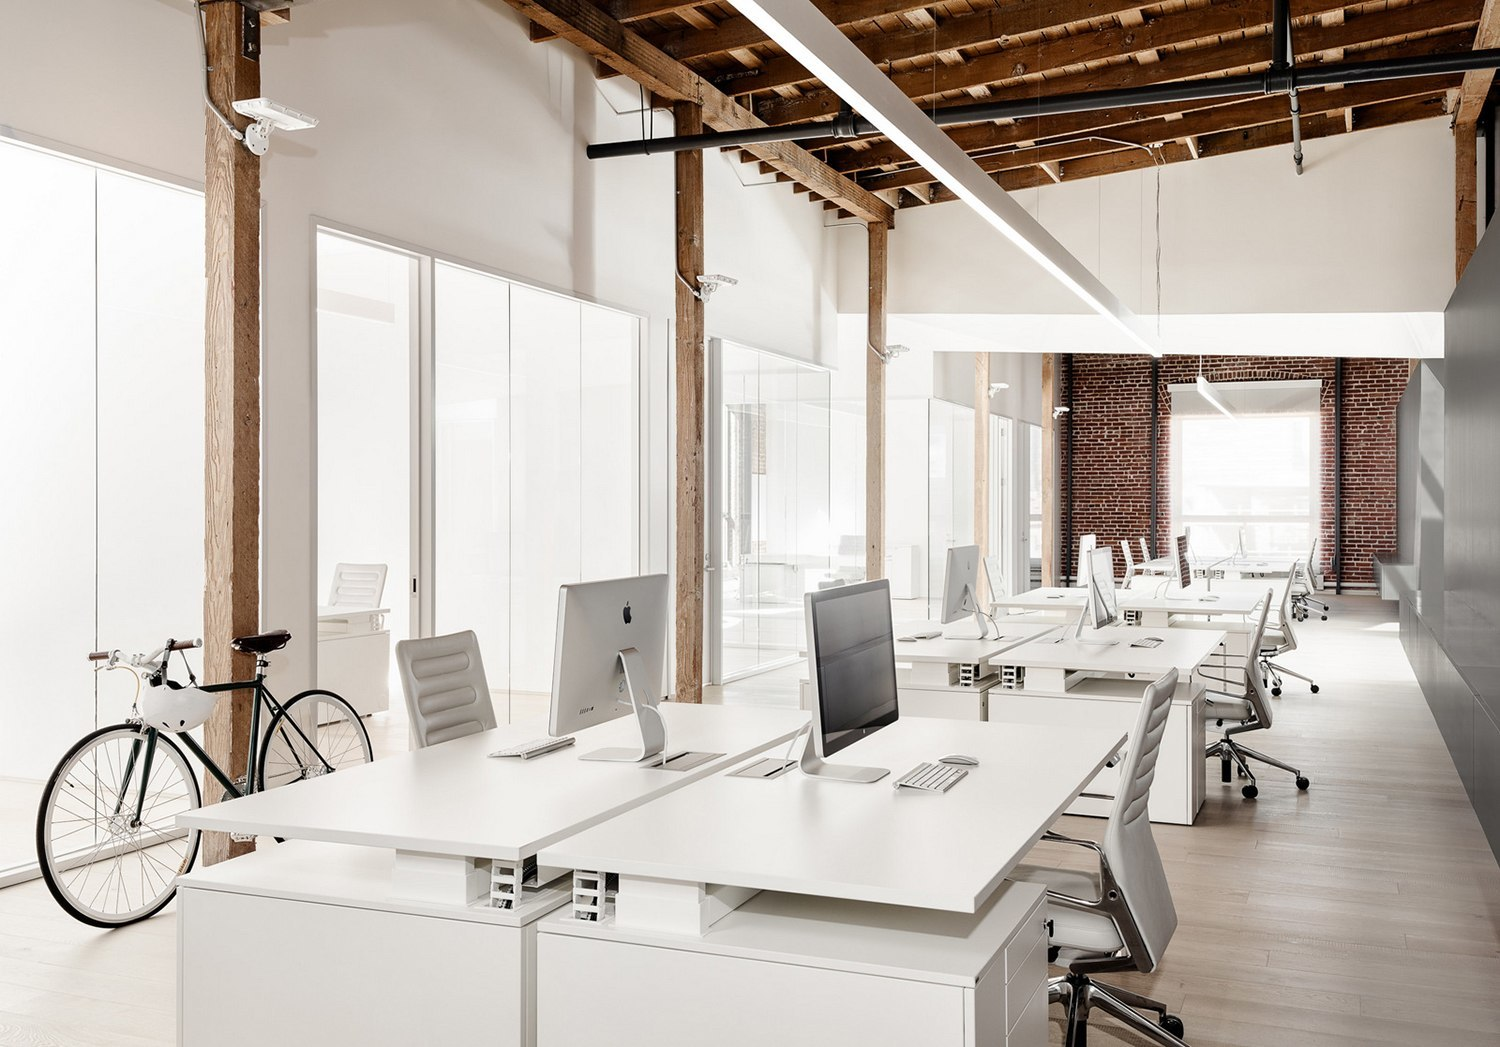 A Look Inside Index Ventures' New San Francisco Office